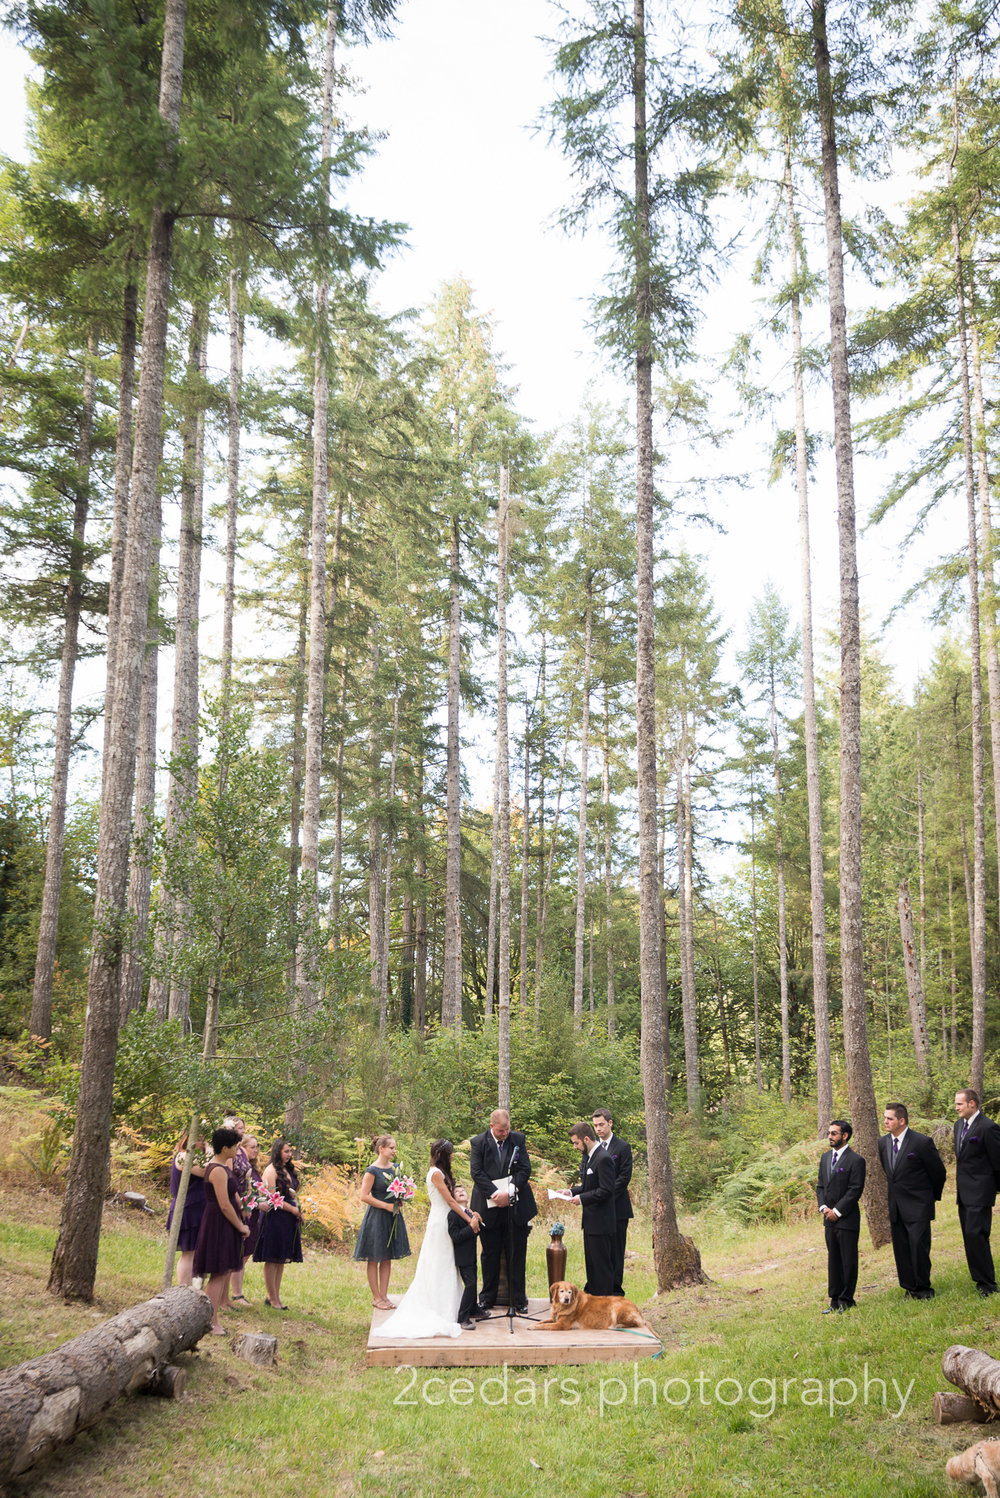 Pacific Northwest Woodland Wedding at Grand Farm, Vaughn, WA